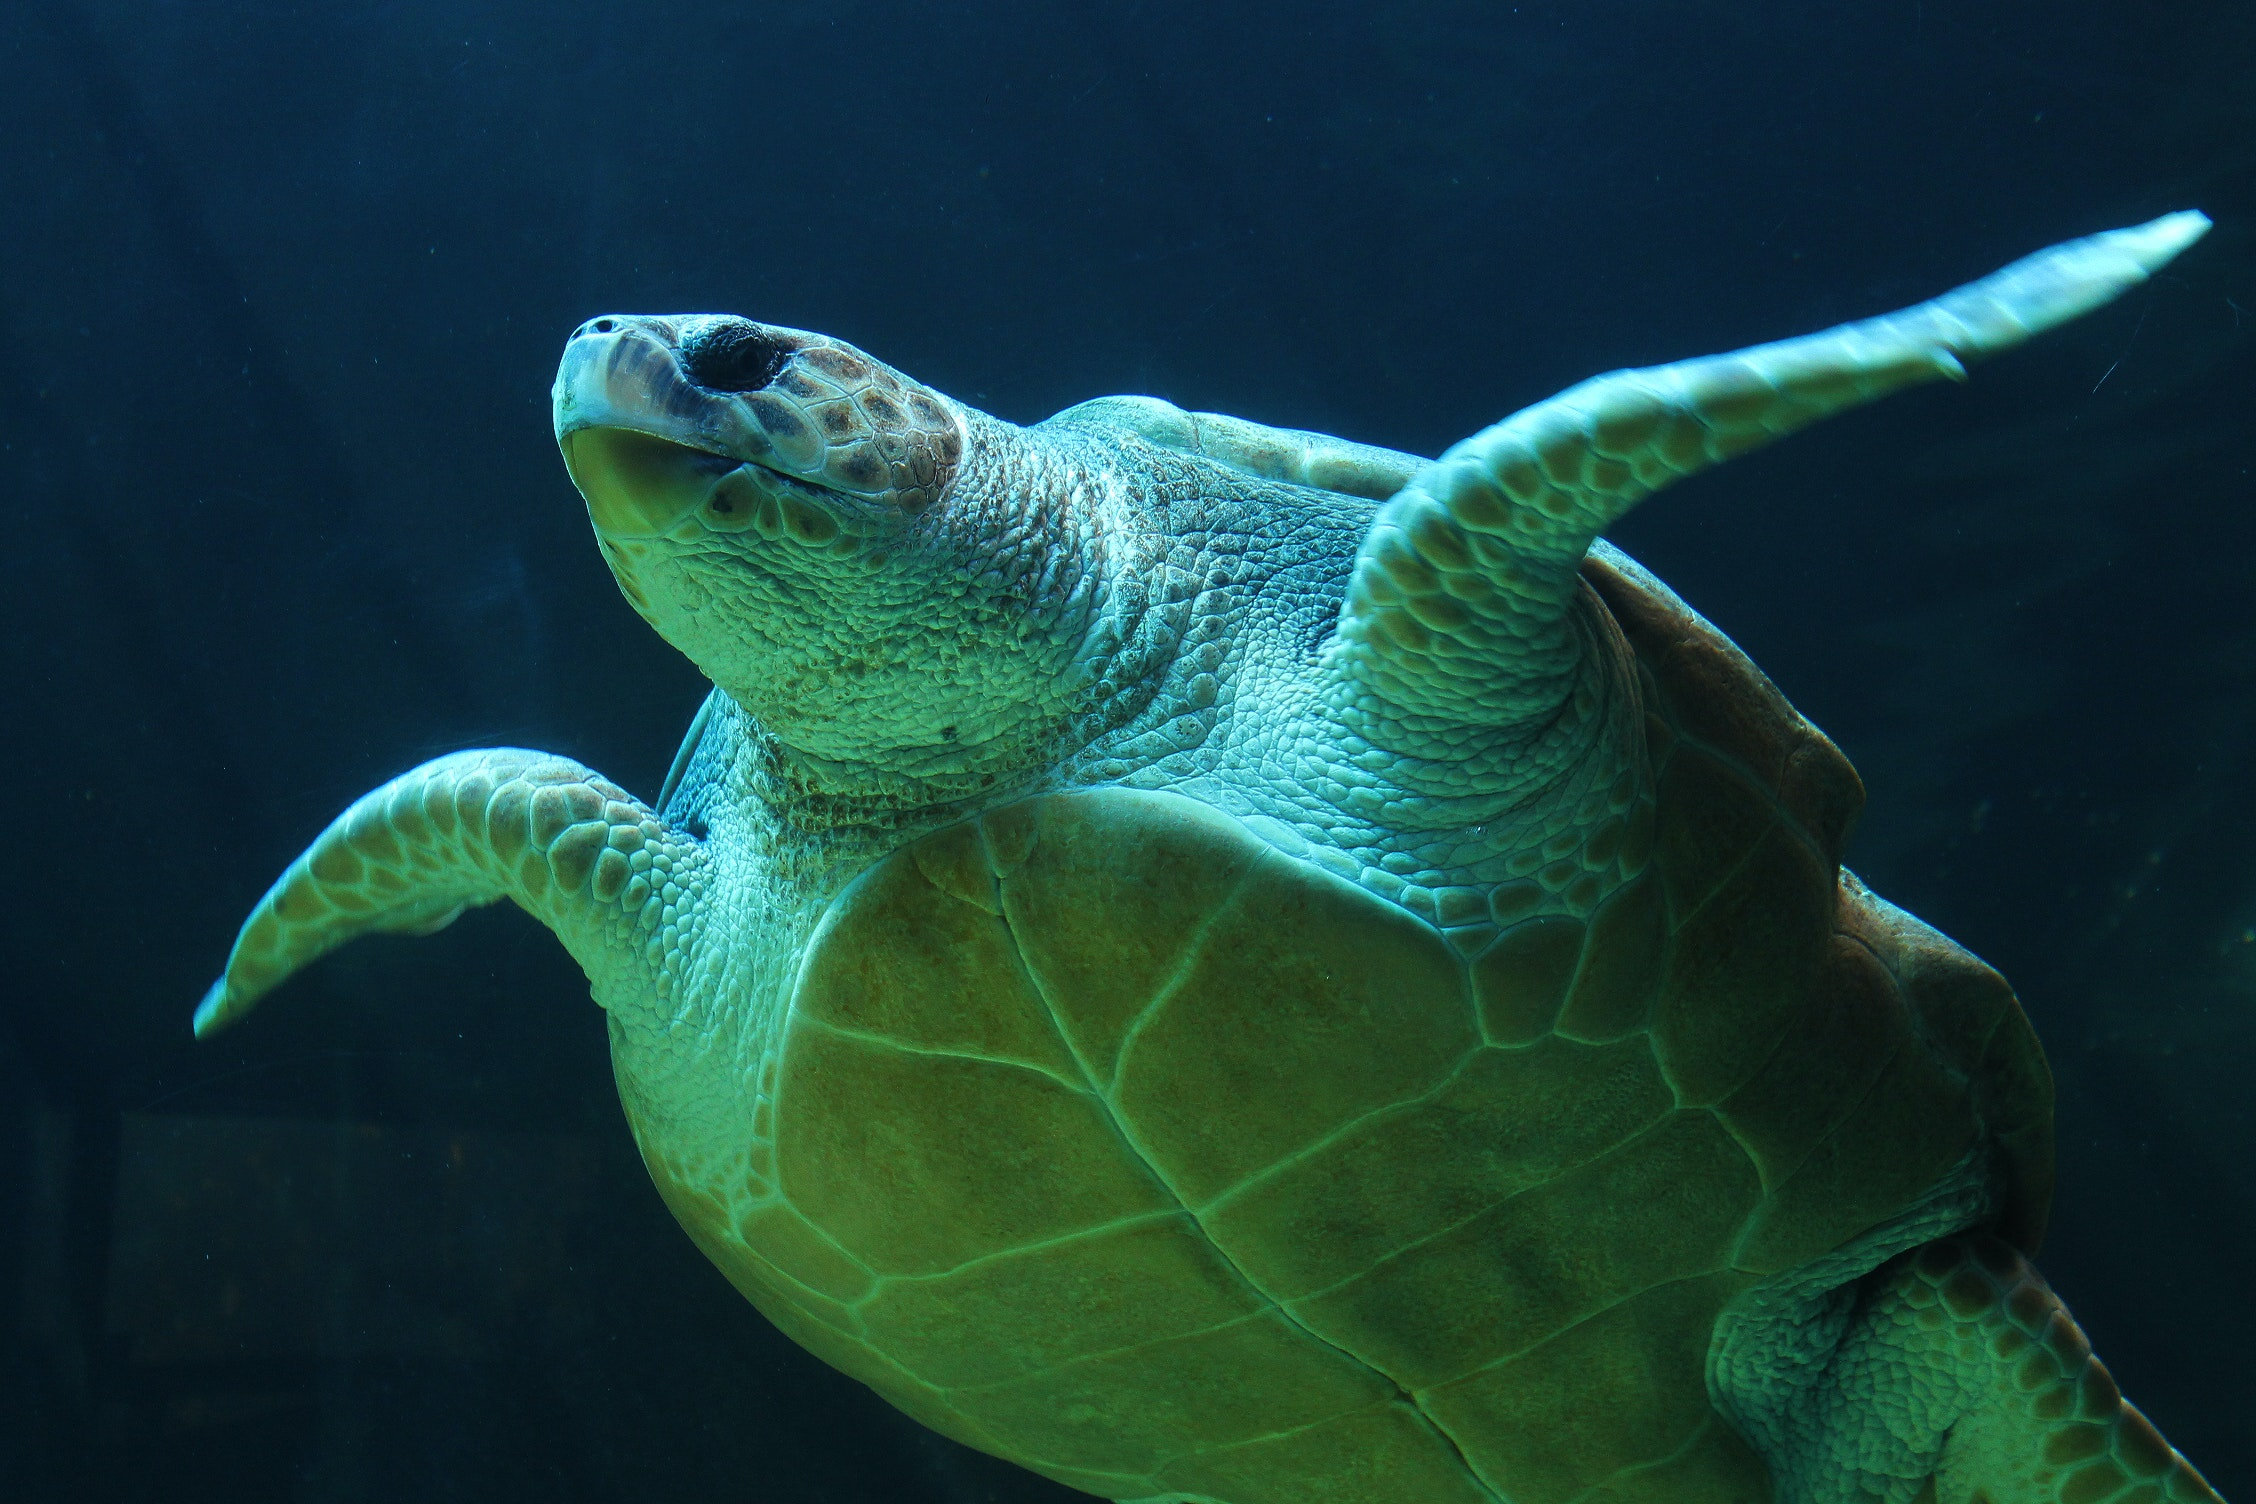 gray and green turtle swimming on water 183 free stock photo